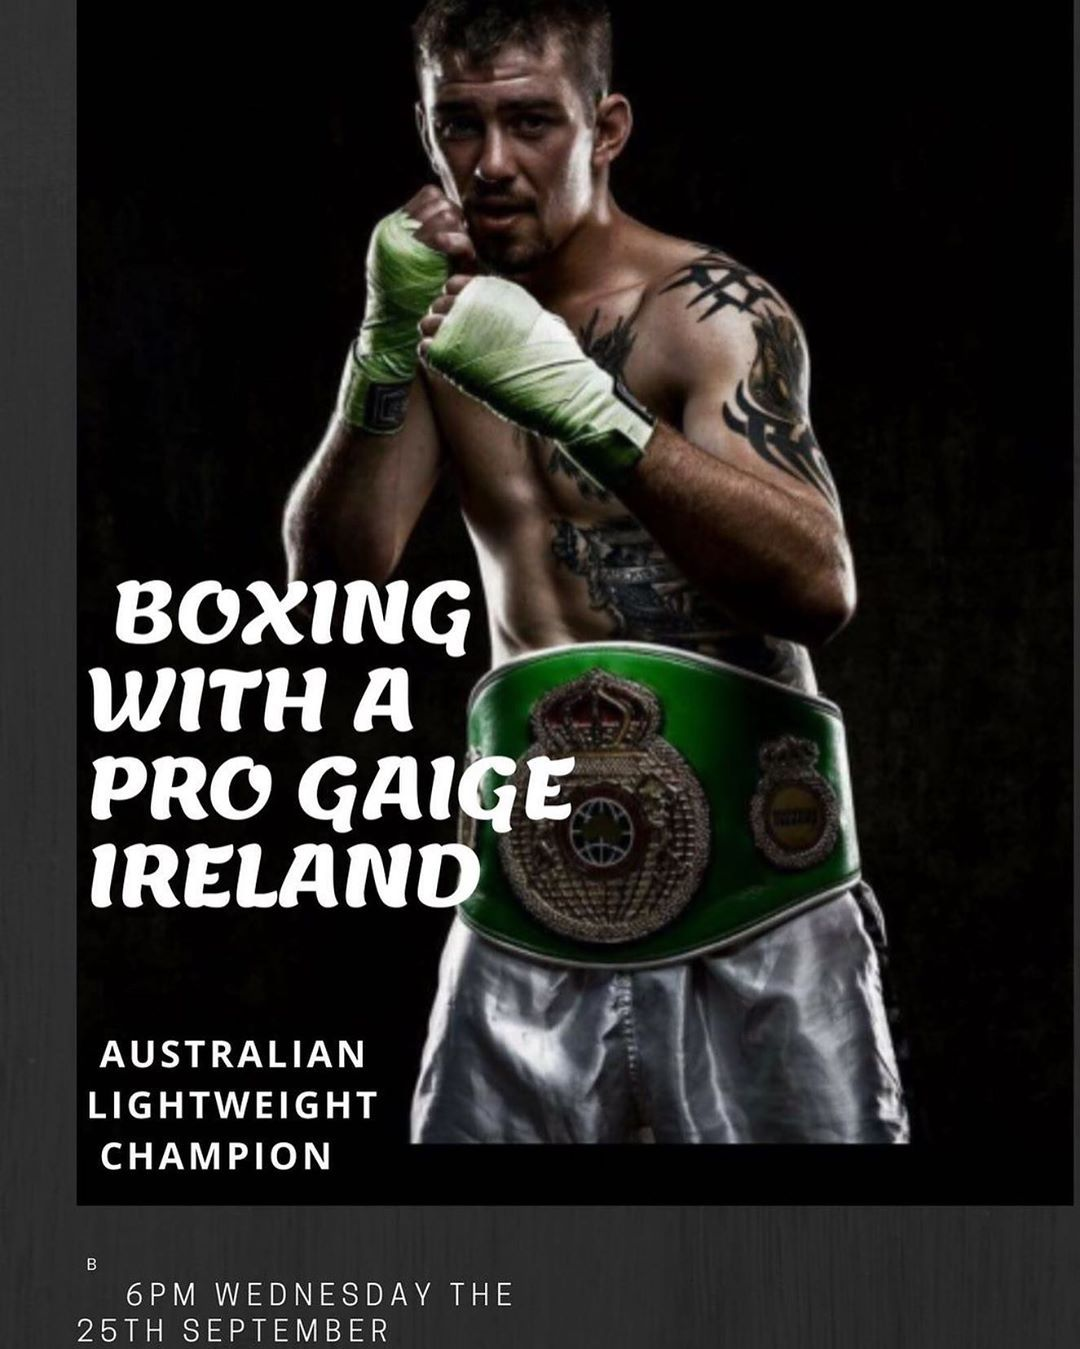 🏅Gaige Ireland 🏅 Australian Lightweight Champion . . . 🥊Wednesday the 25/09/2019 6:00pm . . #Boxing...